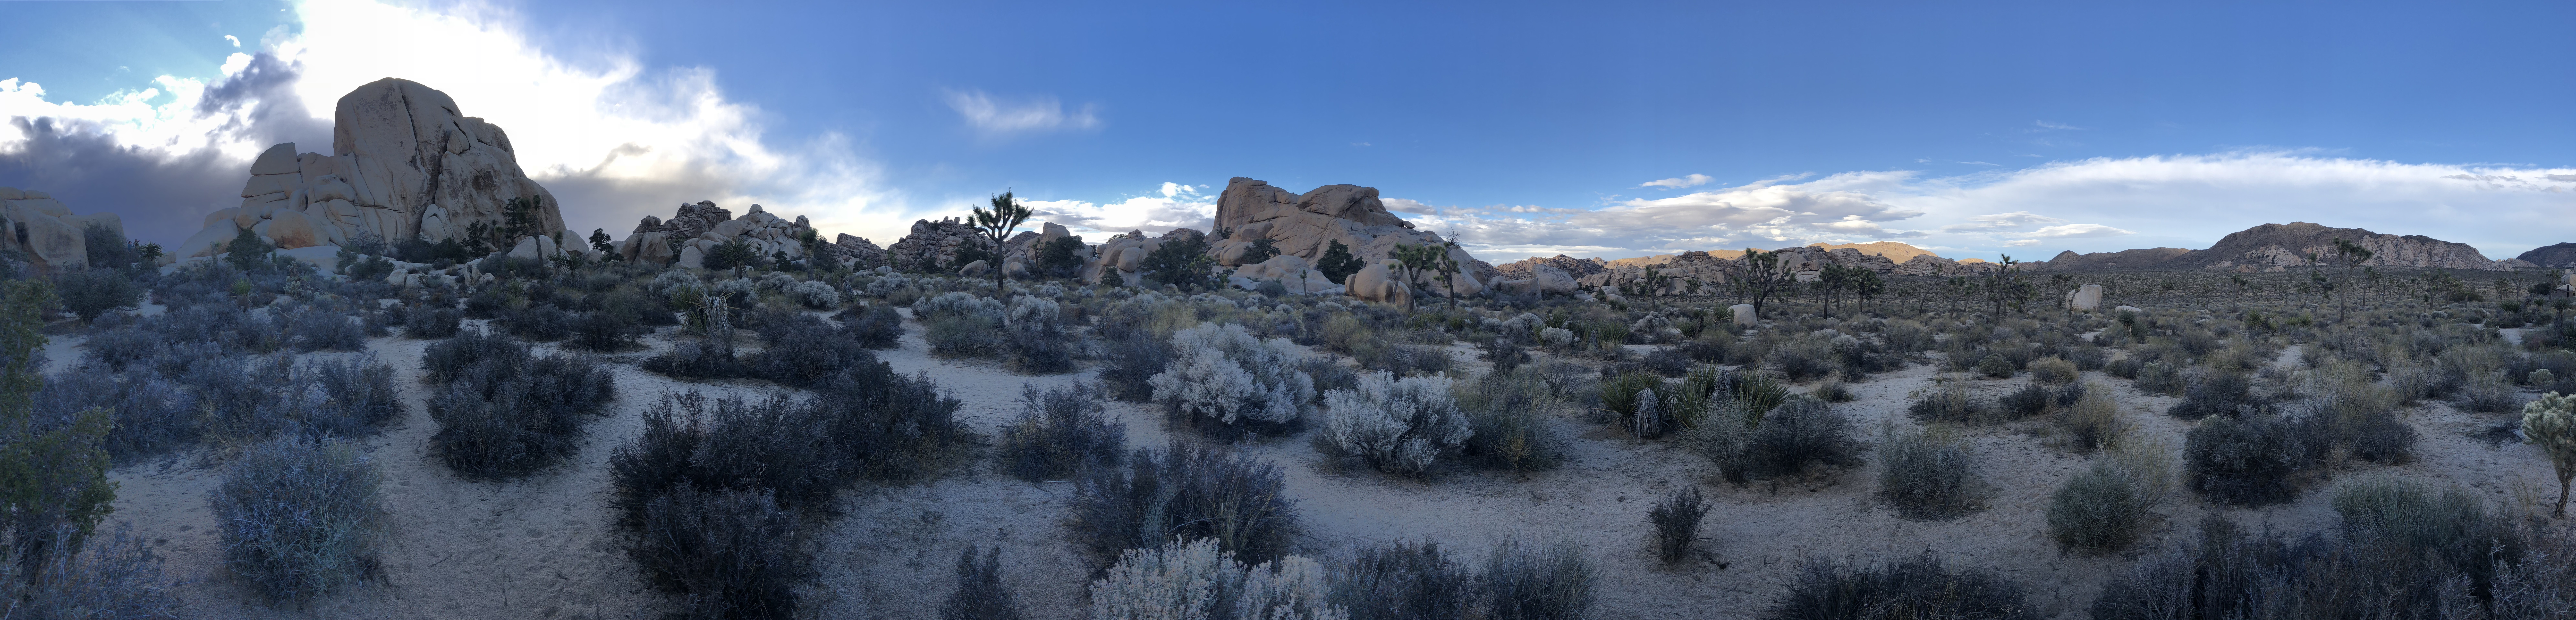 a view of a desert in Joshua Tree National Park